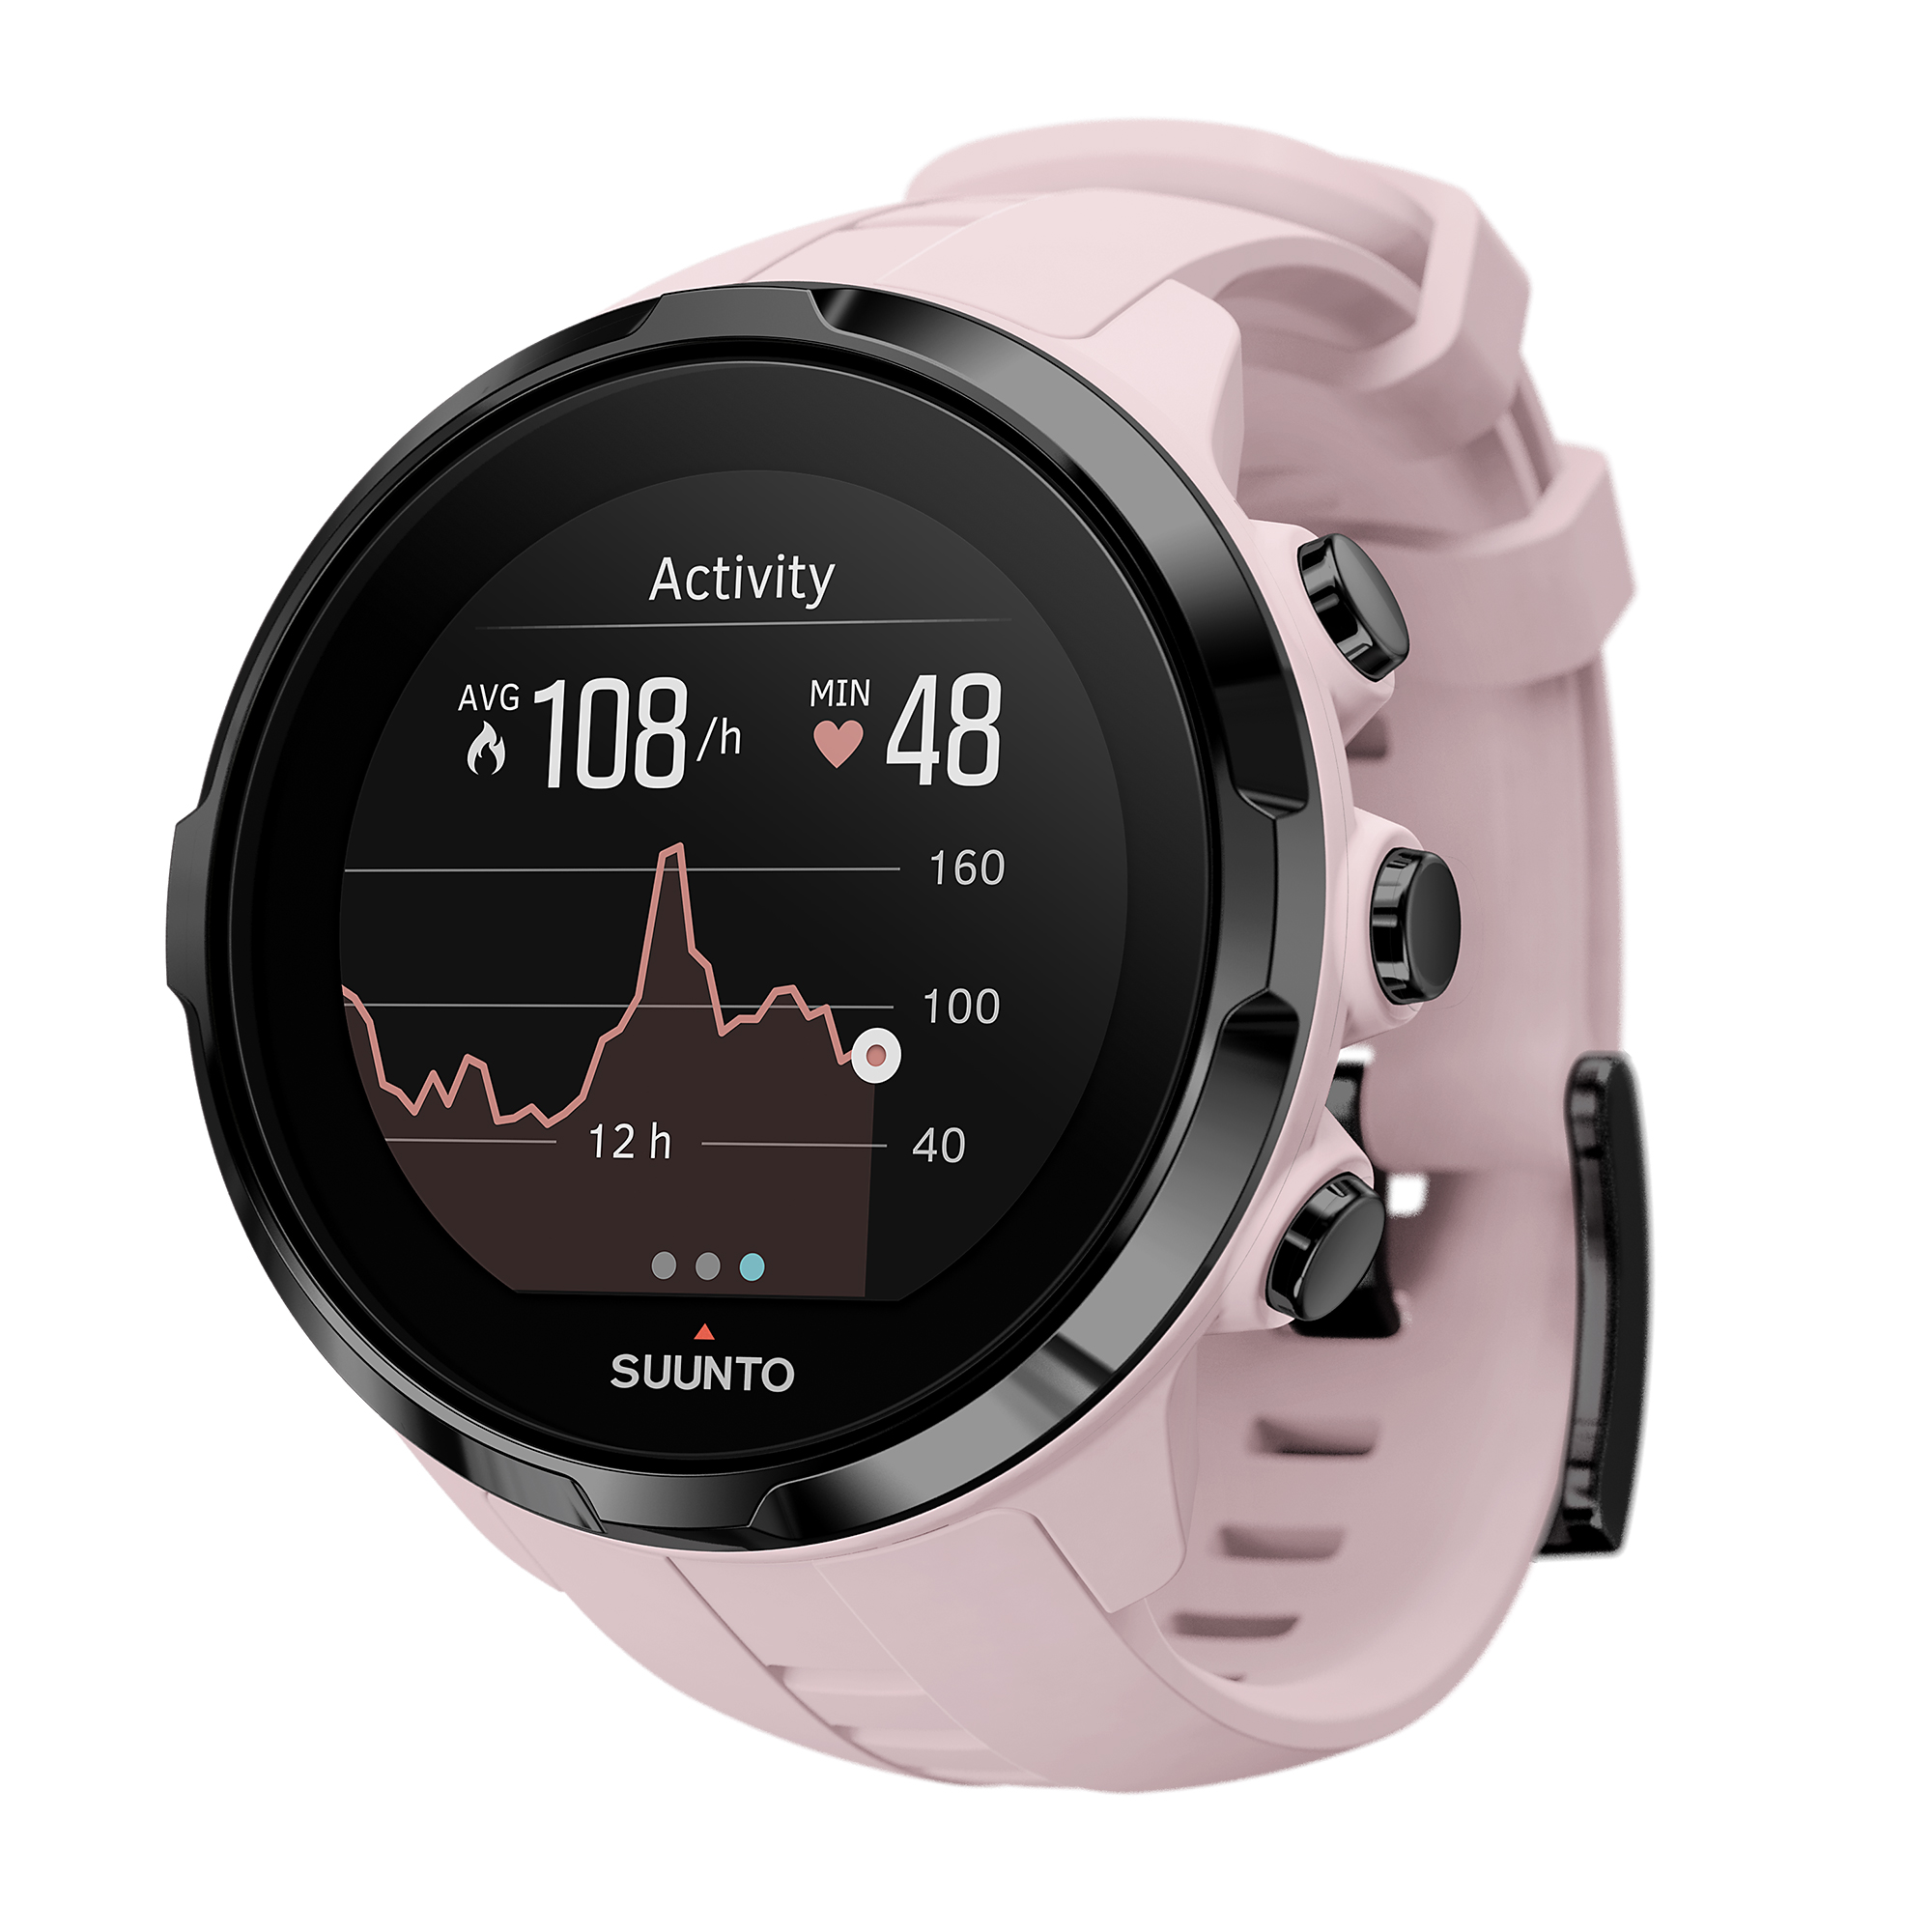 Suunto Spartan Sport Wrist HR Watch, Pink by Suunto